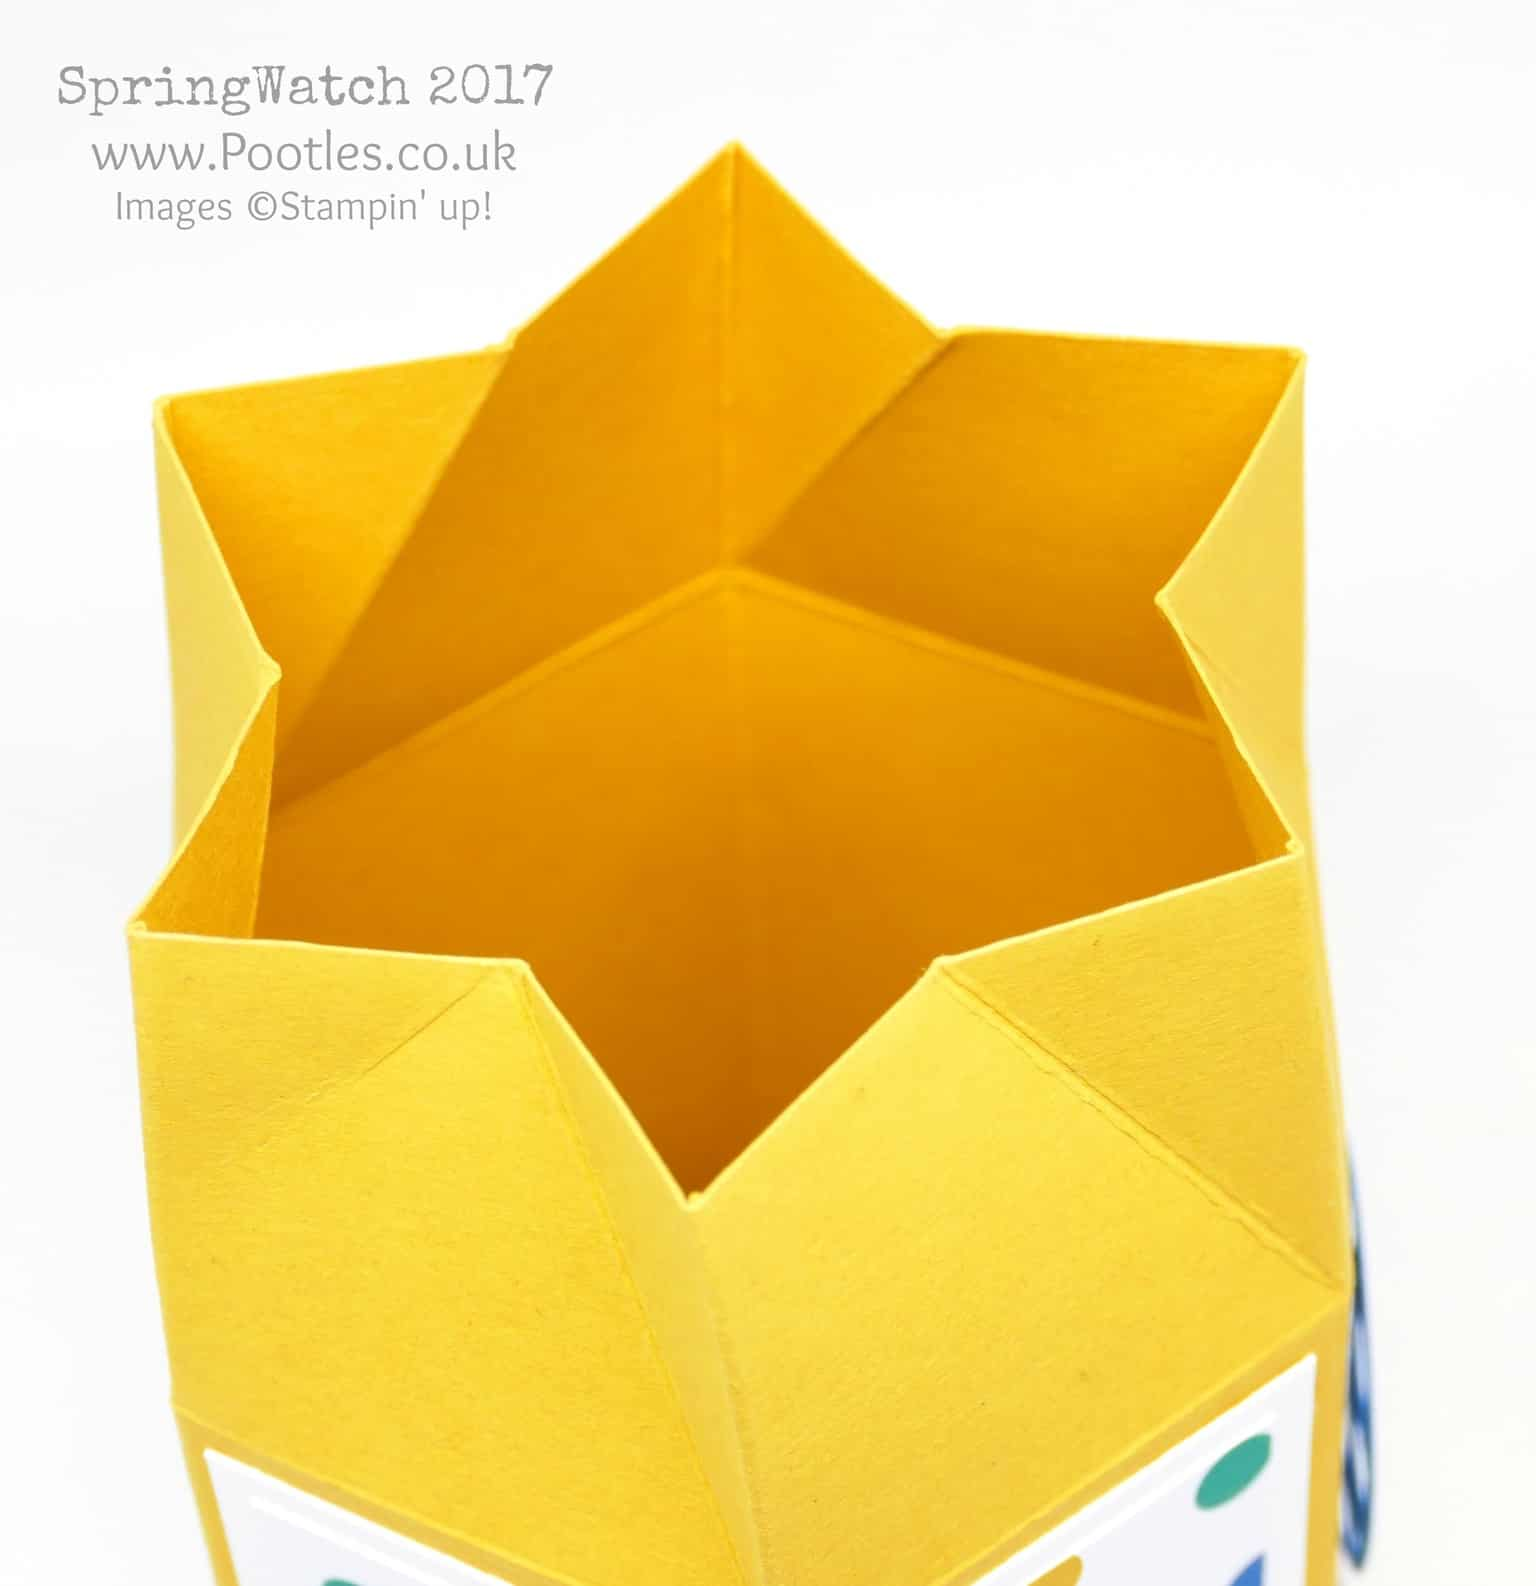 Pootles SpringWatch 2017 Twist & Close Hexagonal Box